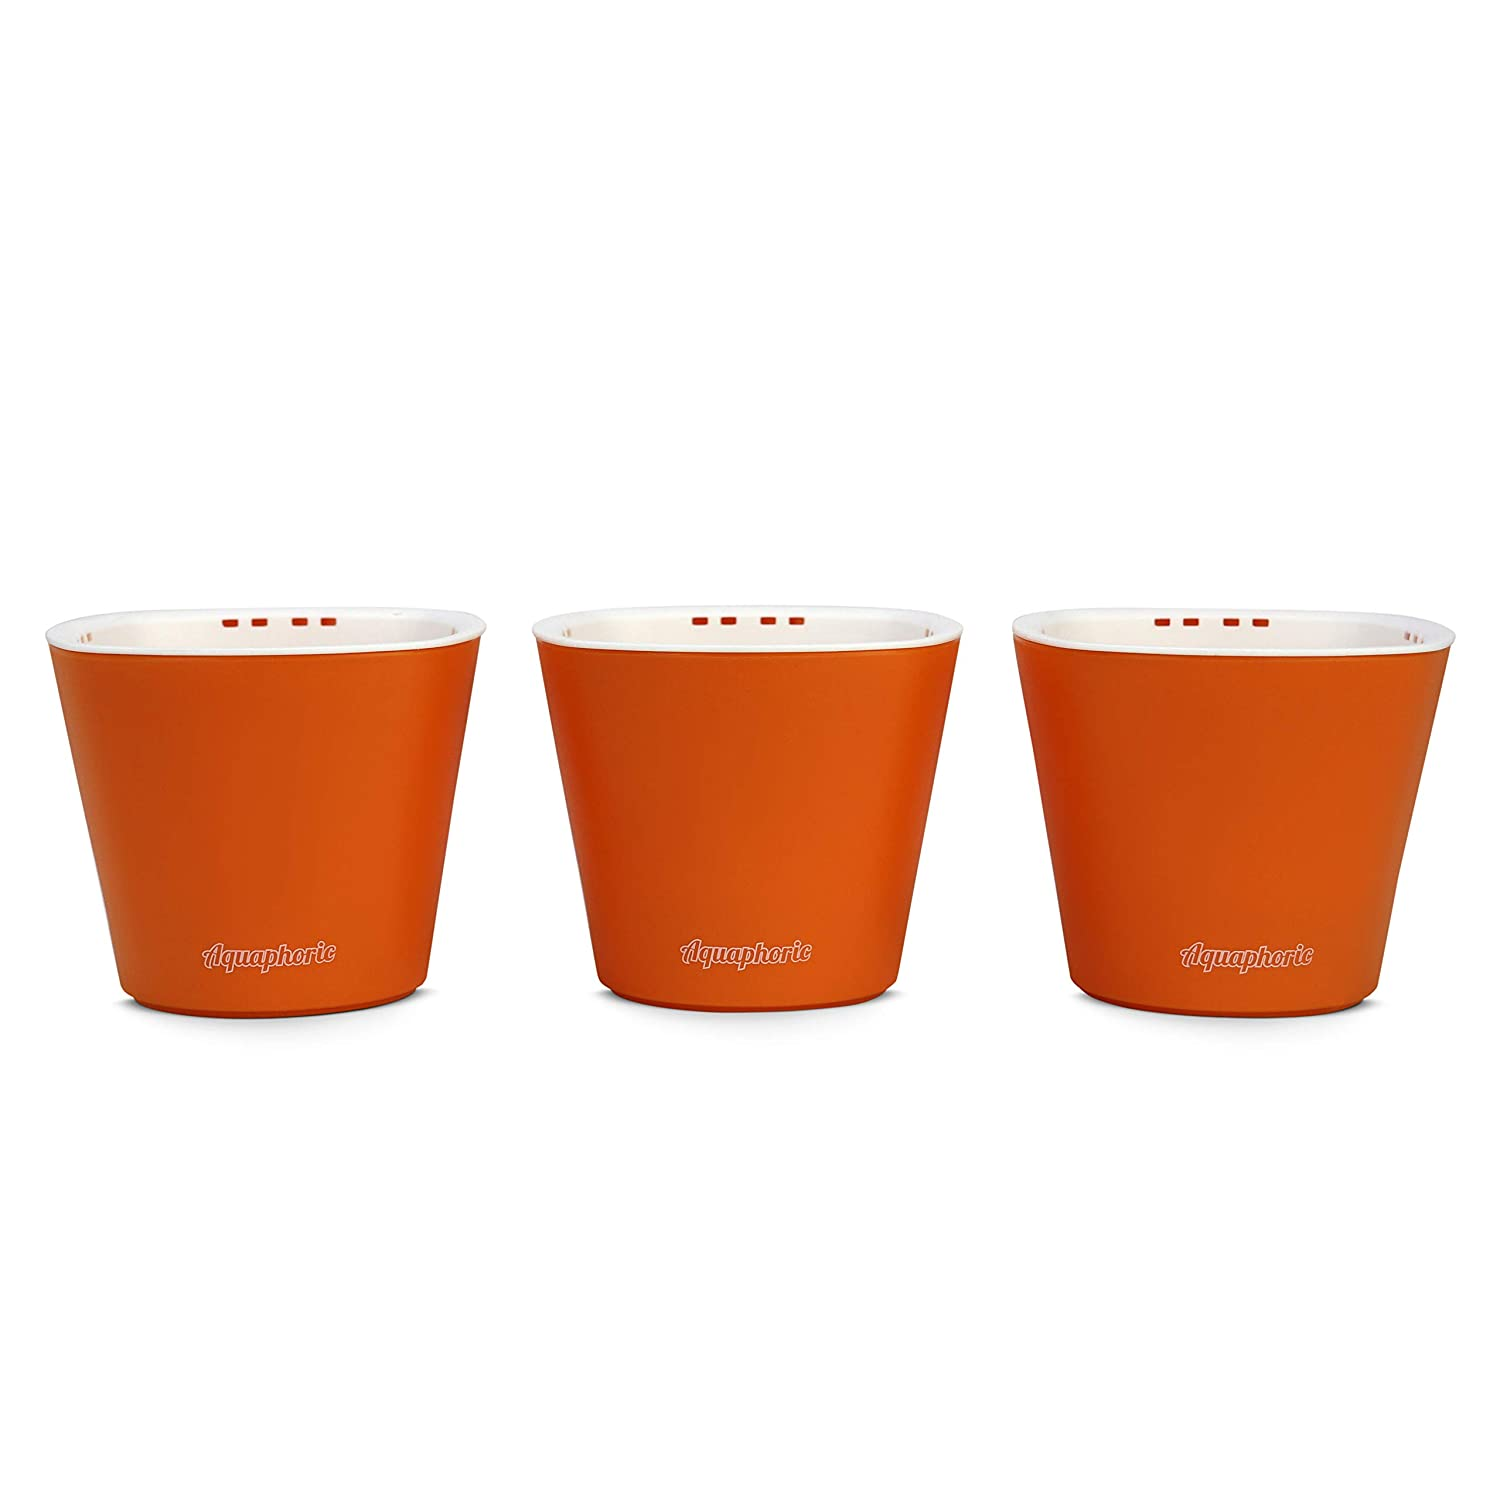 Window Garden Aquaphoric Self Watering Mini Planter Pots 3 Pack Grow On Indoor Sill. Perfect for Potting Small Plants, Herbs, African Violets, Succulents, or Start Seedlings. Orange Matte